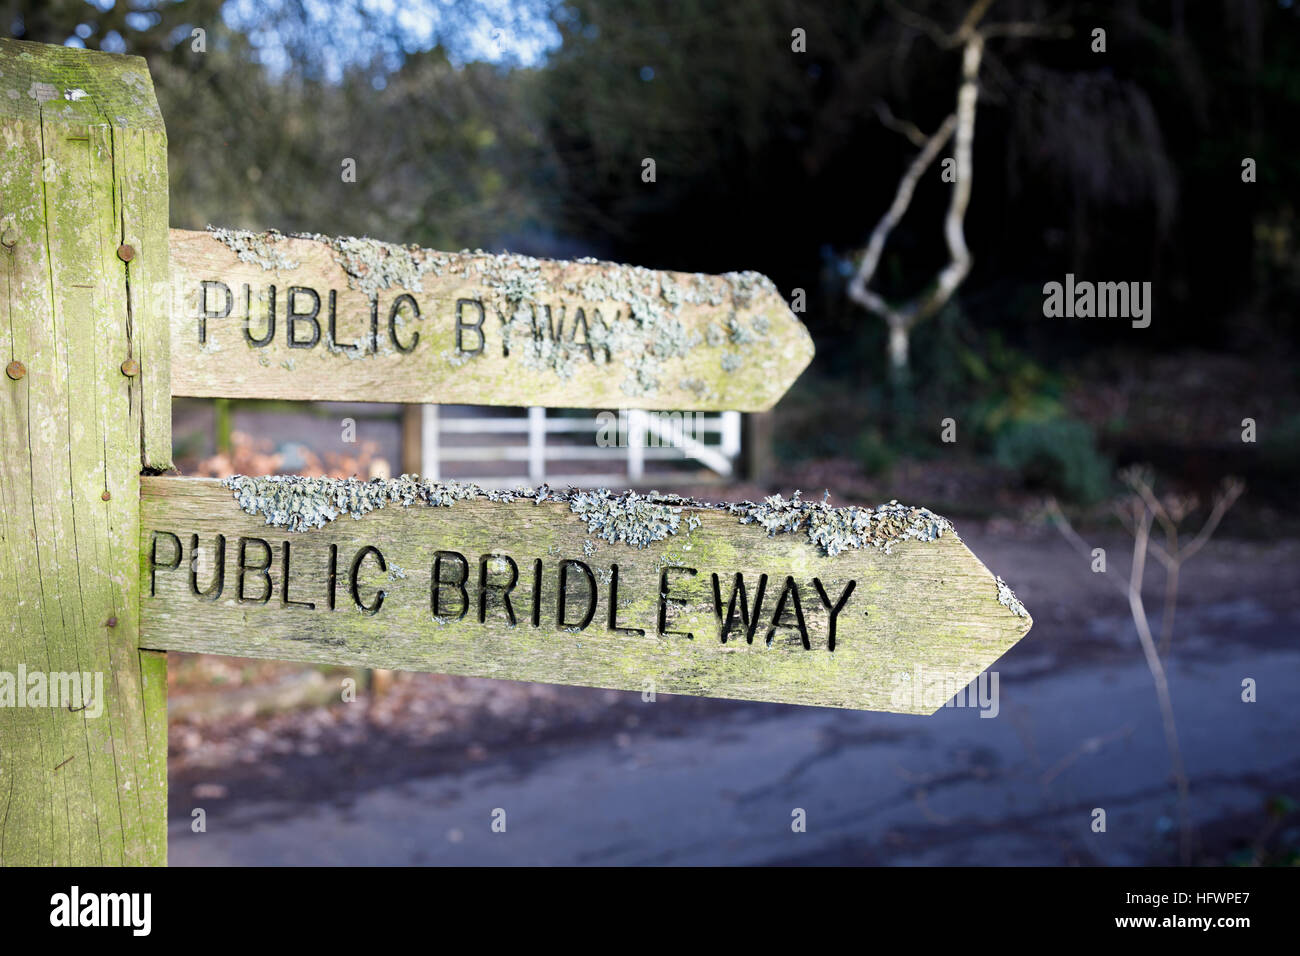 Traditional wooden lichen-encrusted public bridleway and byway fingerpost, Tilford near Farnham, Surrey, UK - Stock Image